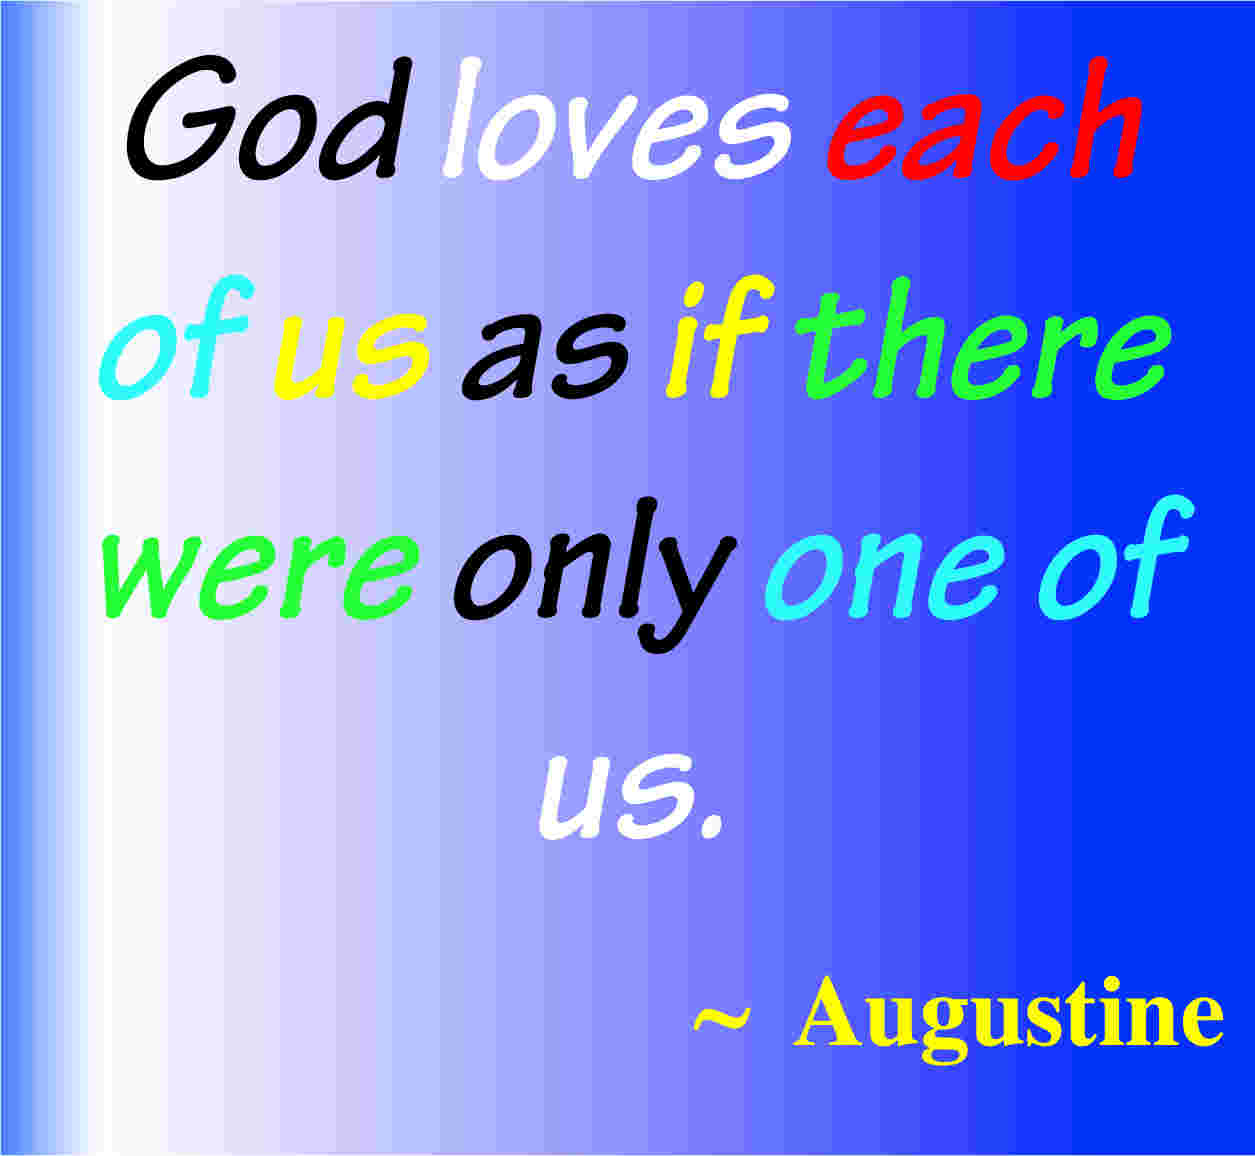 Love Quotes From The Bible 20 Inspirational Bible Verses About God's Love